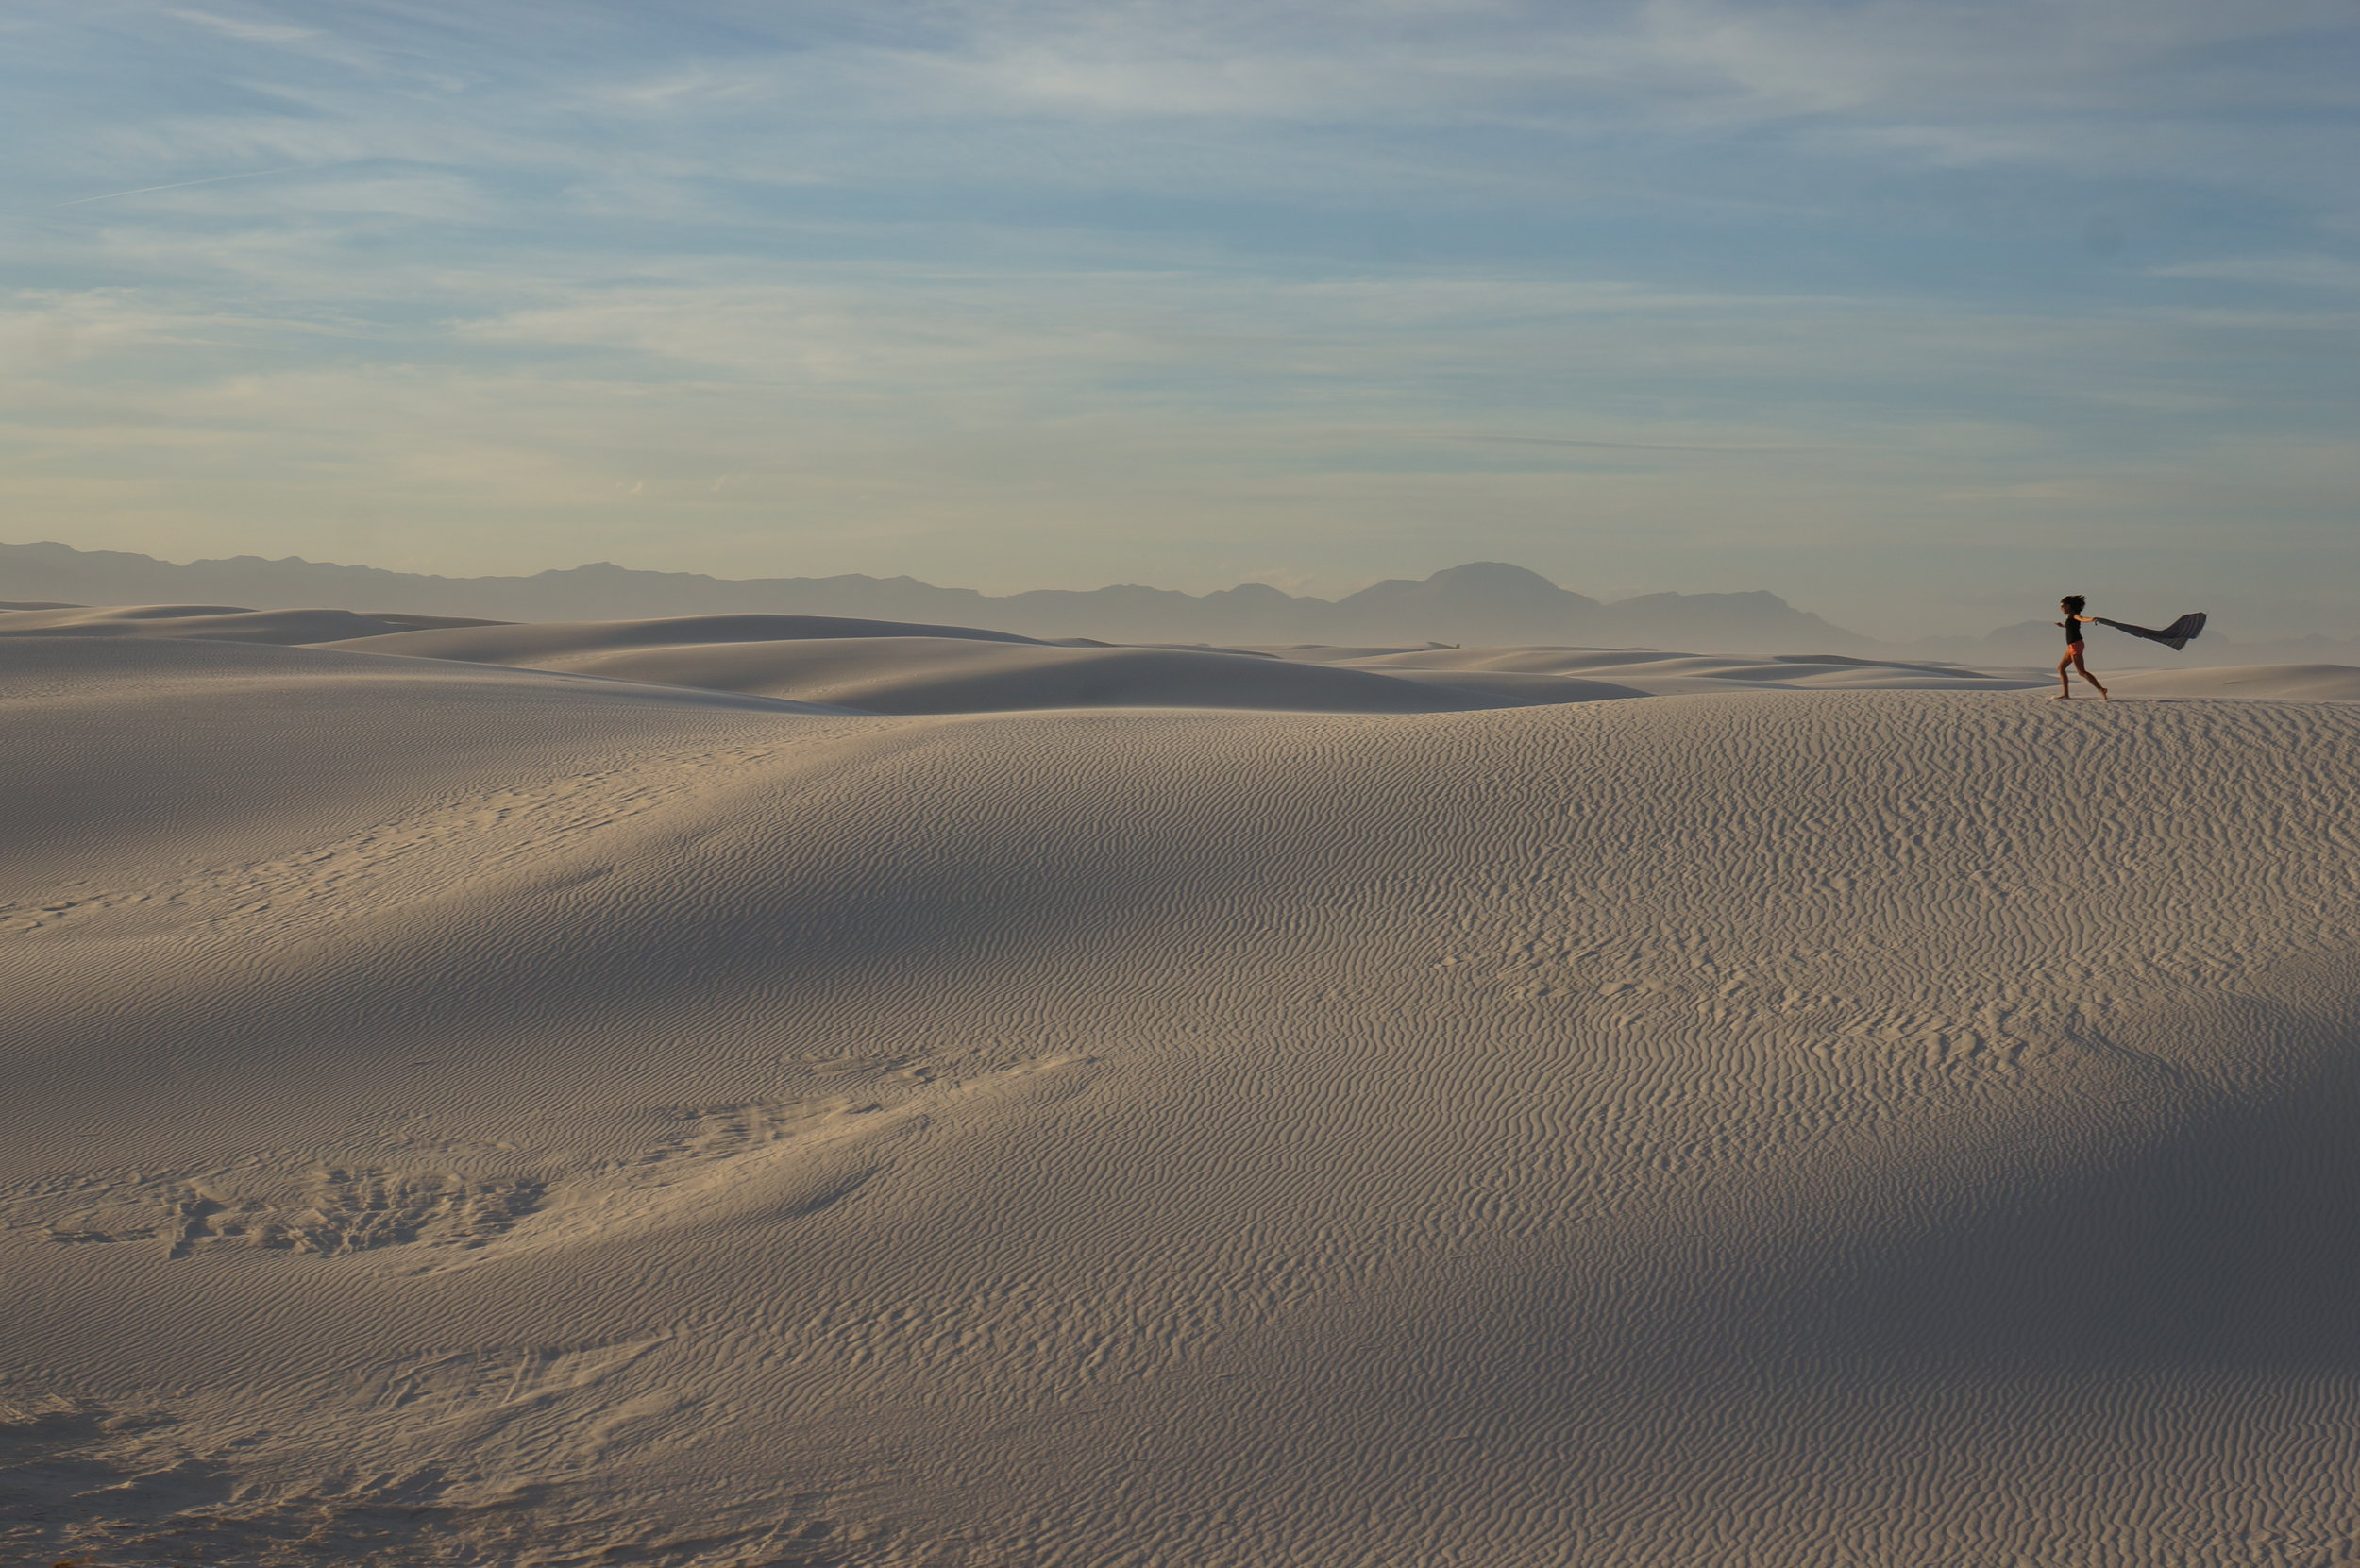 The sand hills are alive...